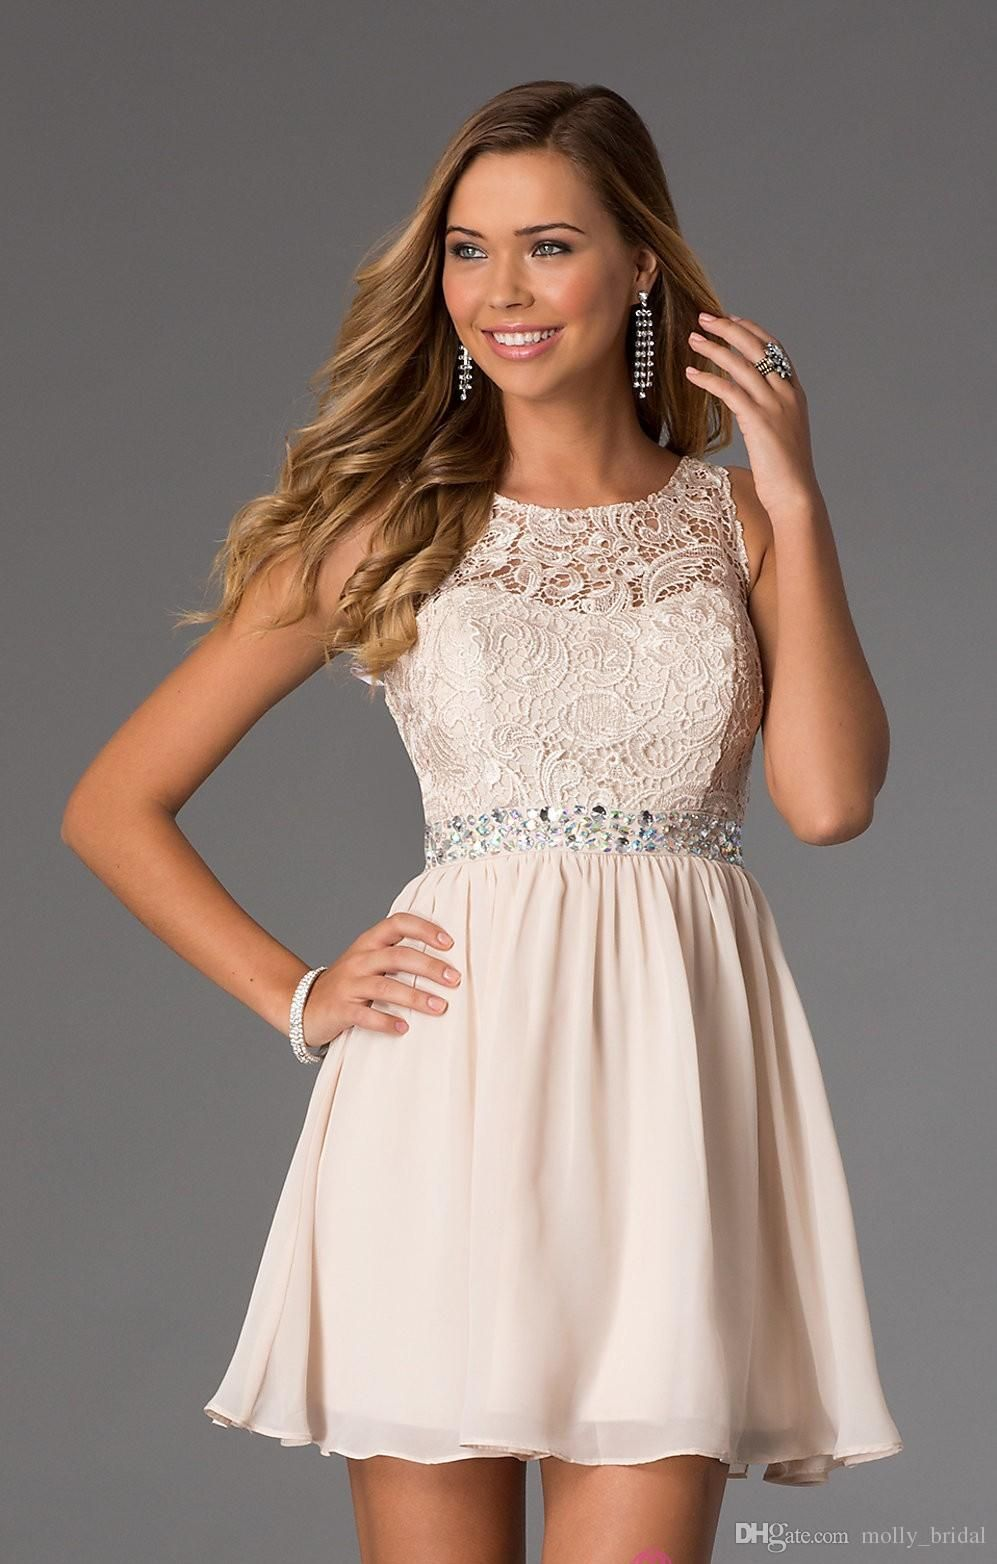 f133ba35f615d seoProductName | Style | Prom dresses, Formal dresses, Dresses